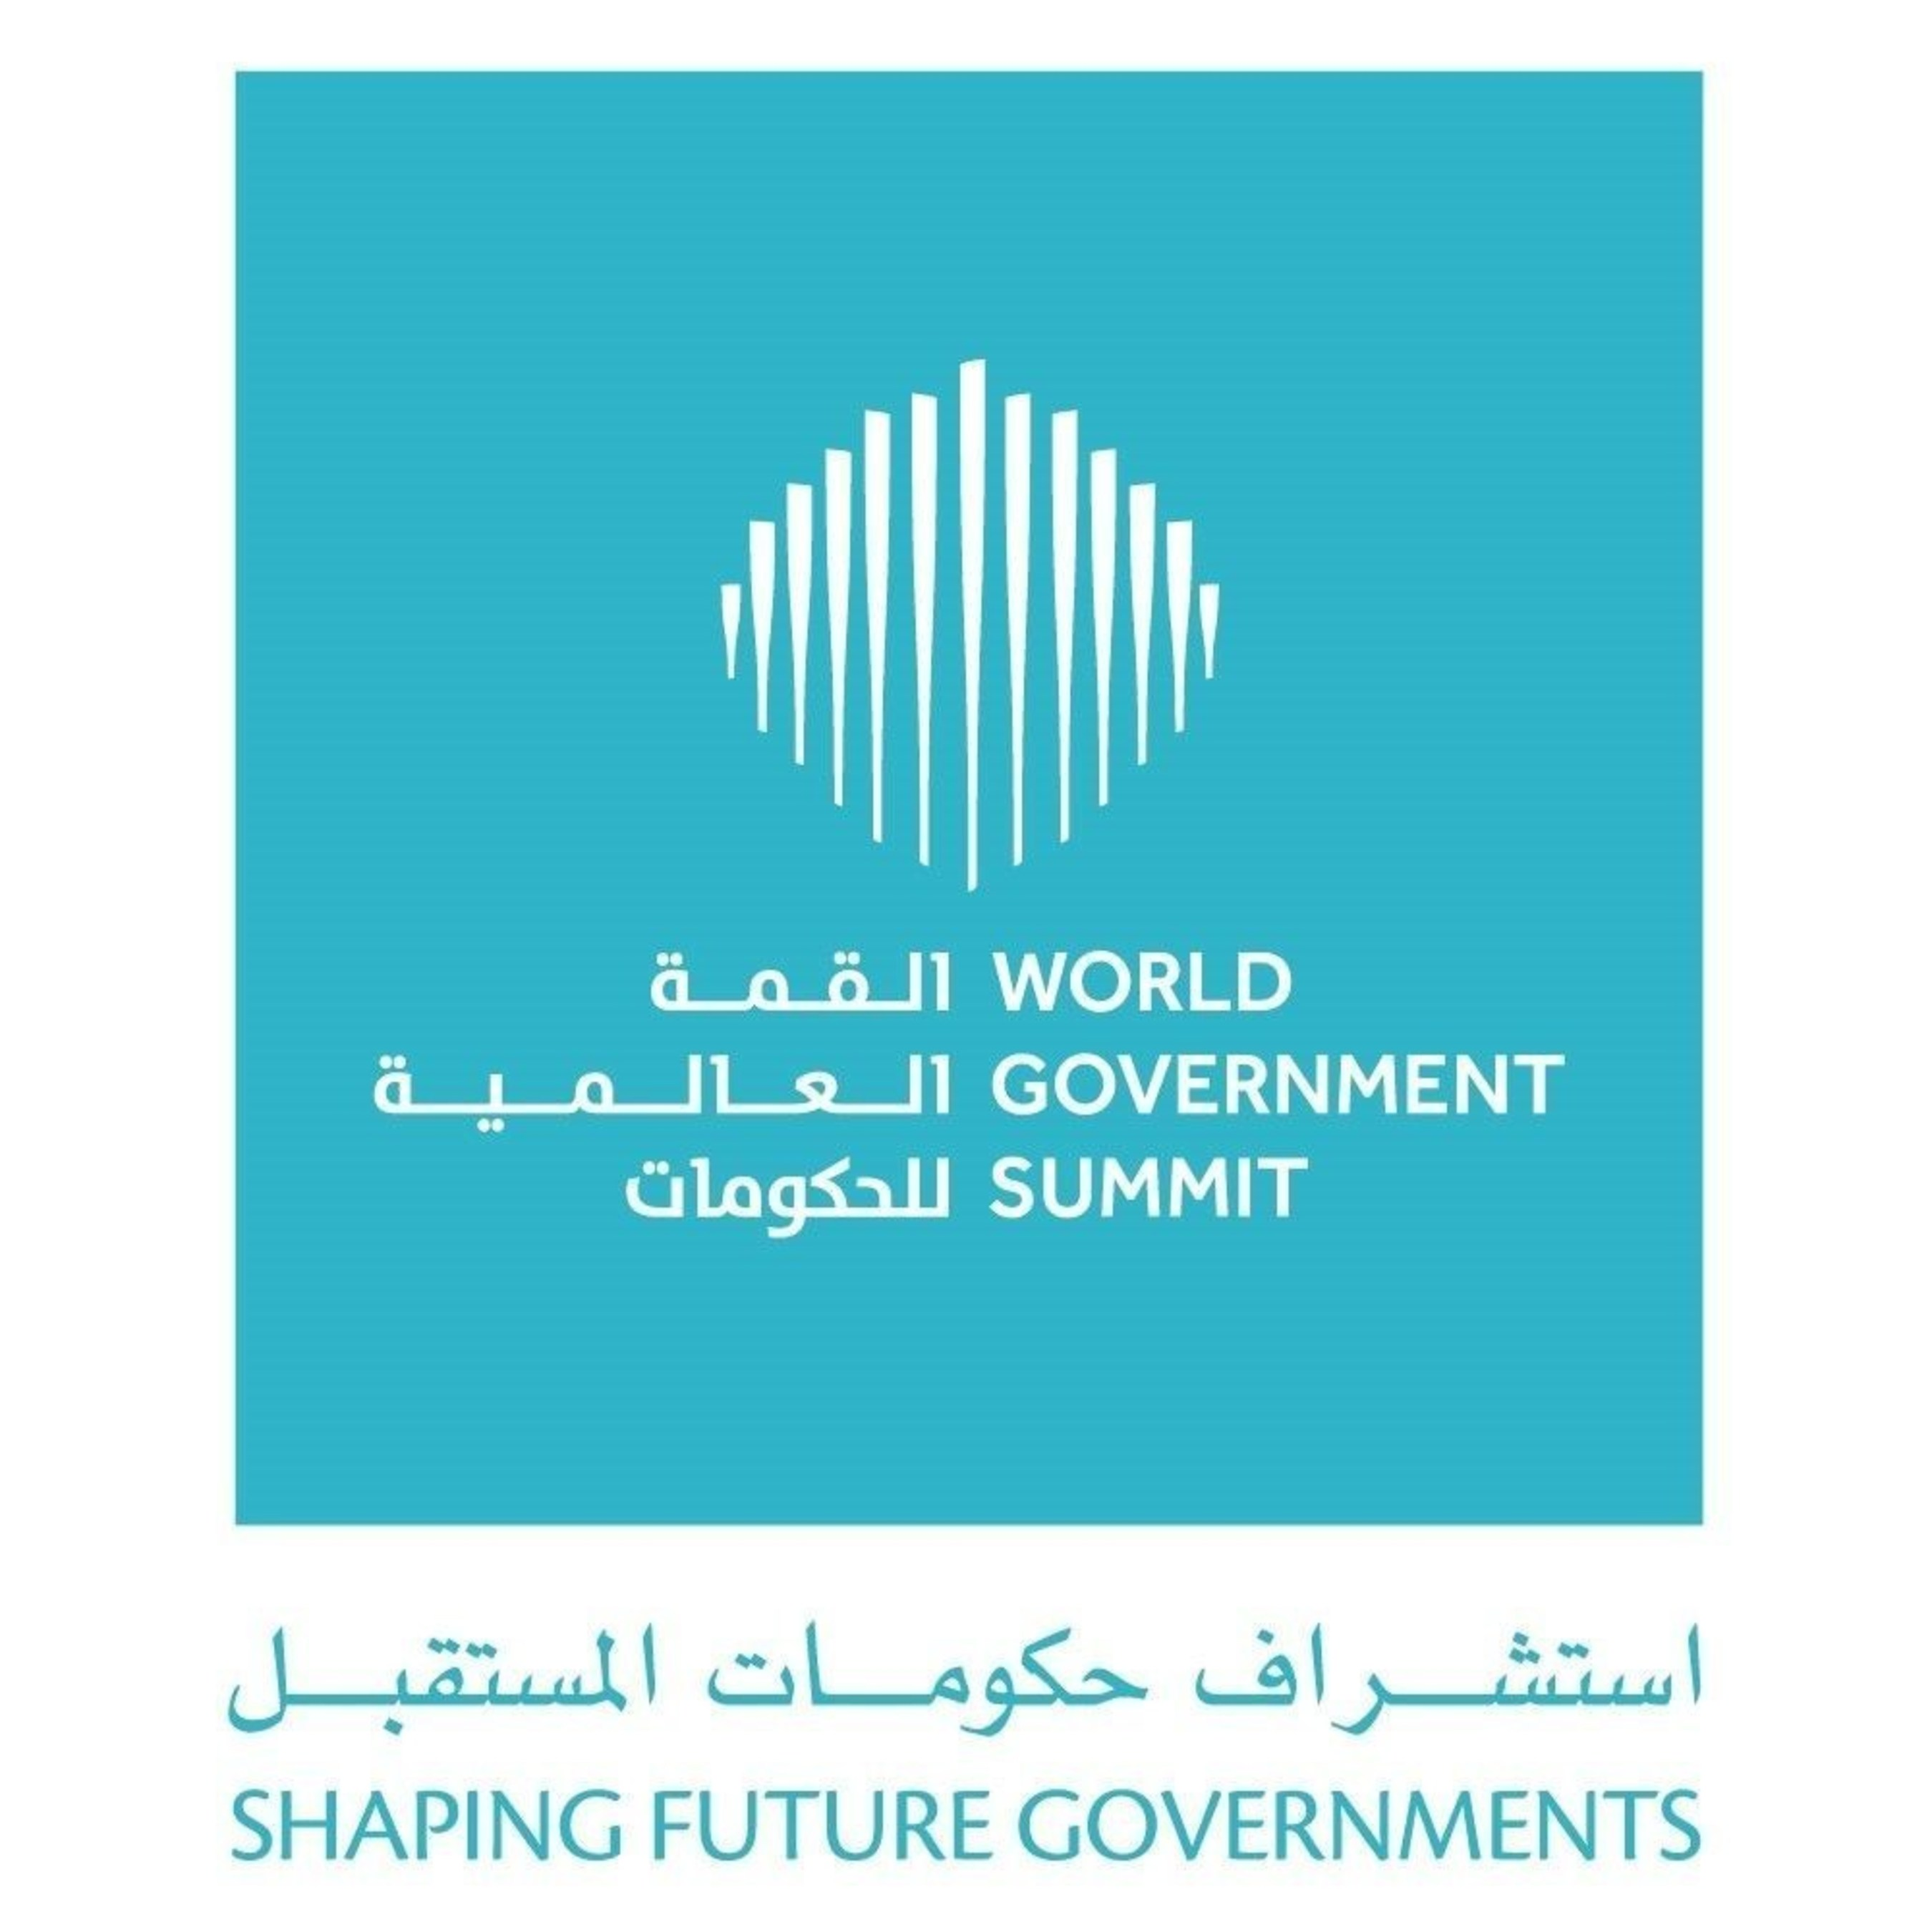 World Government Summit 2016: Sheikh Mohammed bin Rashid, UAE Vice President and Ruler of Dubai Tweets 'Dialogue of the Future'